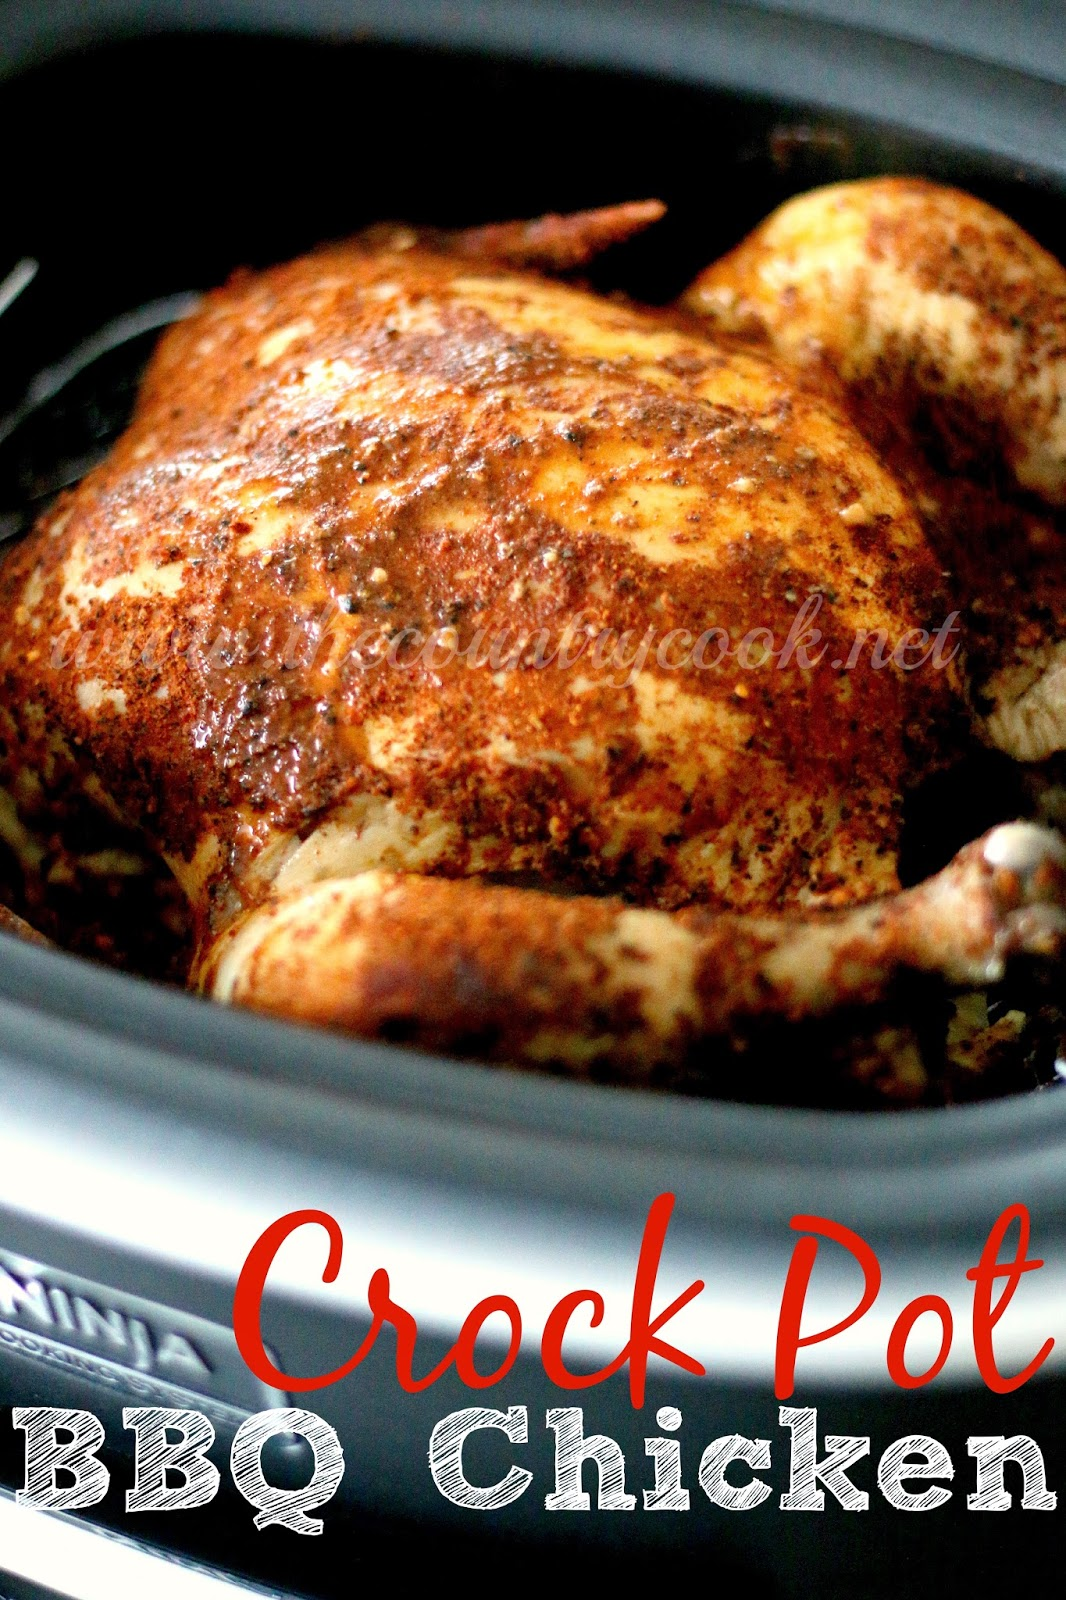 Crock Pot Whole BBQ Chicken - The Country Cook